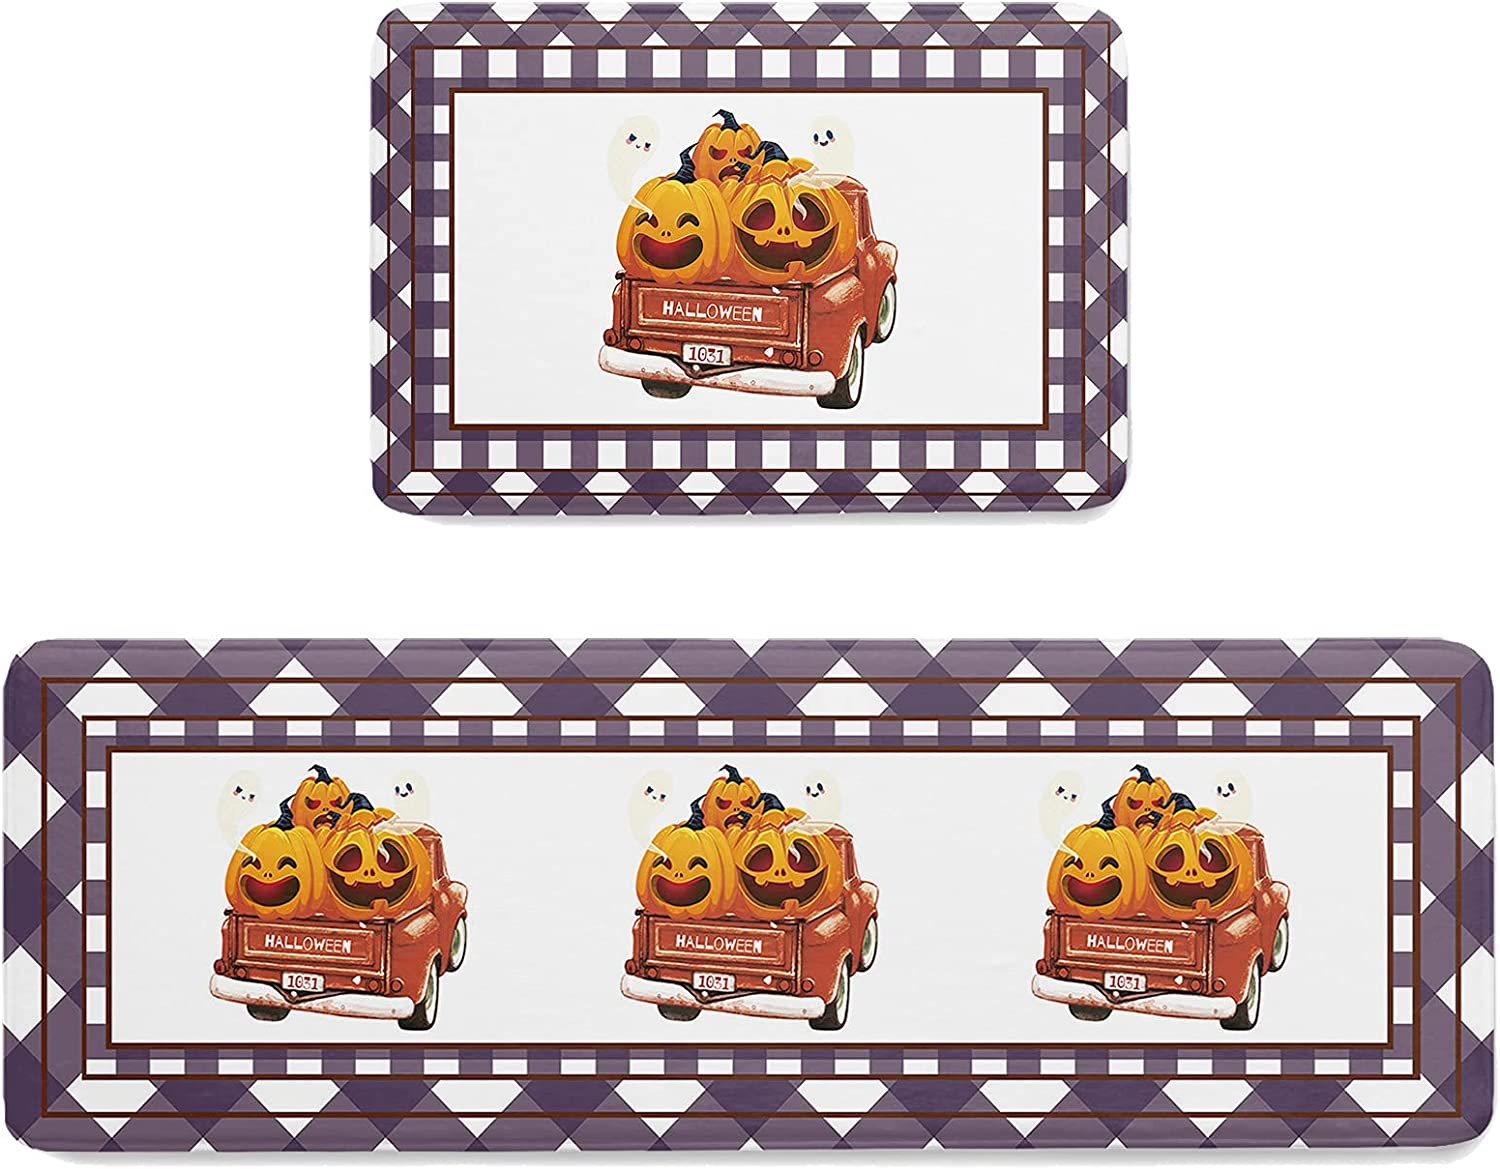 ARTSHOWING Anti sold out Fatigue Kitchen Rugs 2 Our shop OFFers the best service Set Piece Wate Halloween